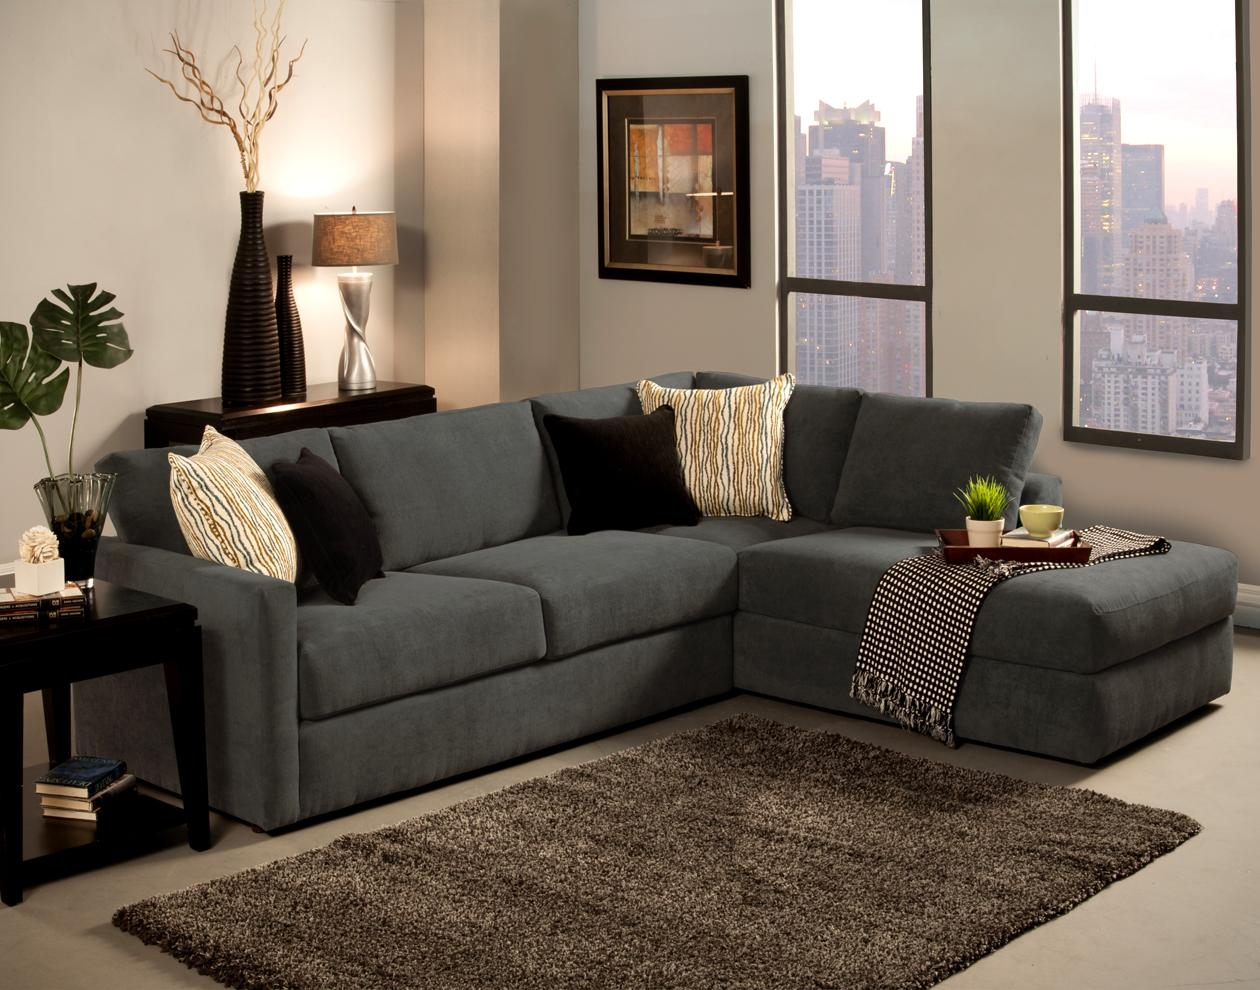 Sofa And Chaise Lounge Set Perfectly Wn7 | Umpsa 78 Sofas Intended For Sofas And Chaises Lounge Sets (View 4 of 20)